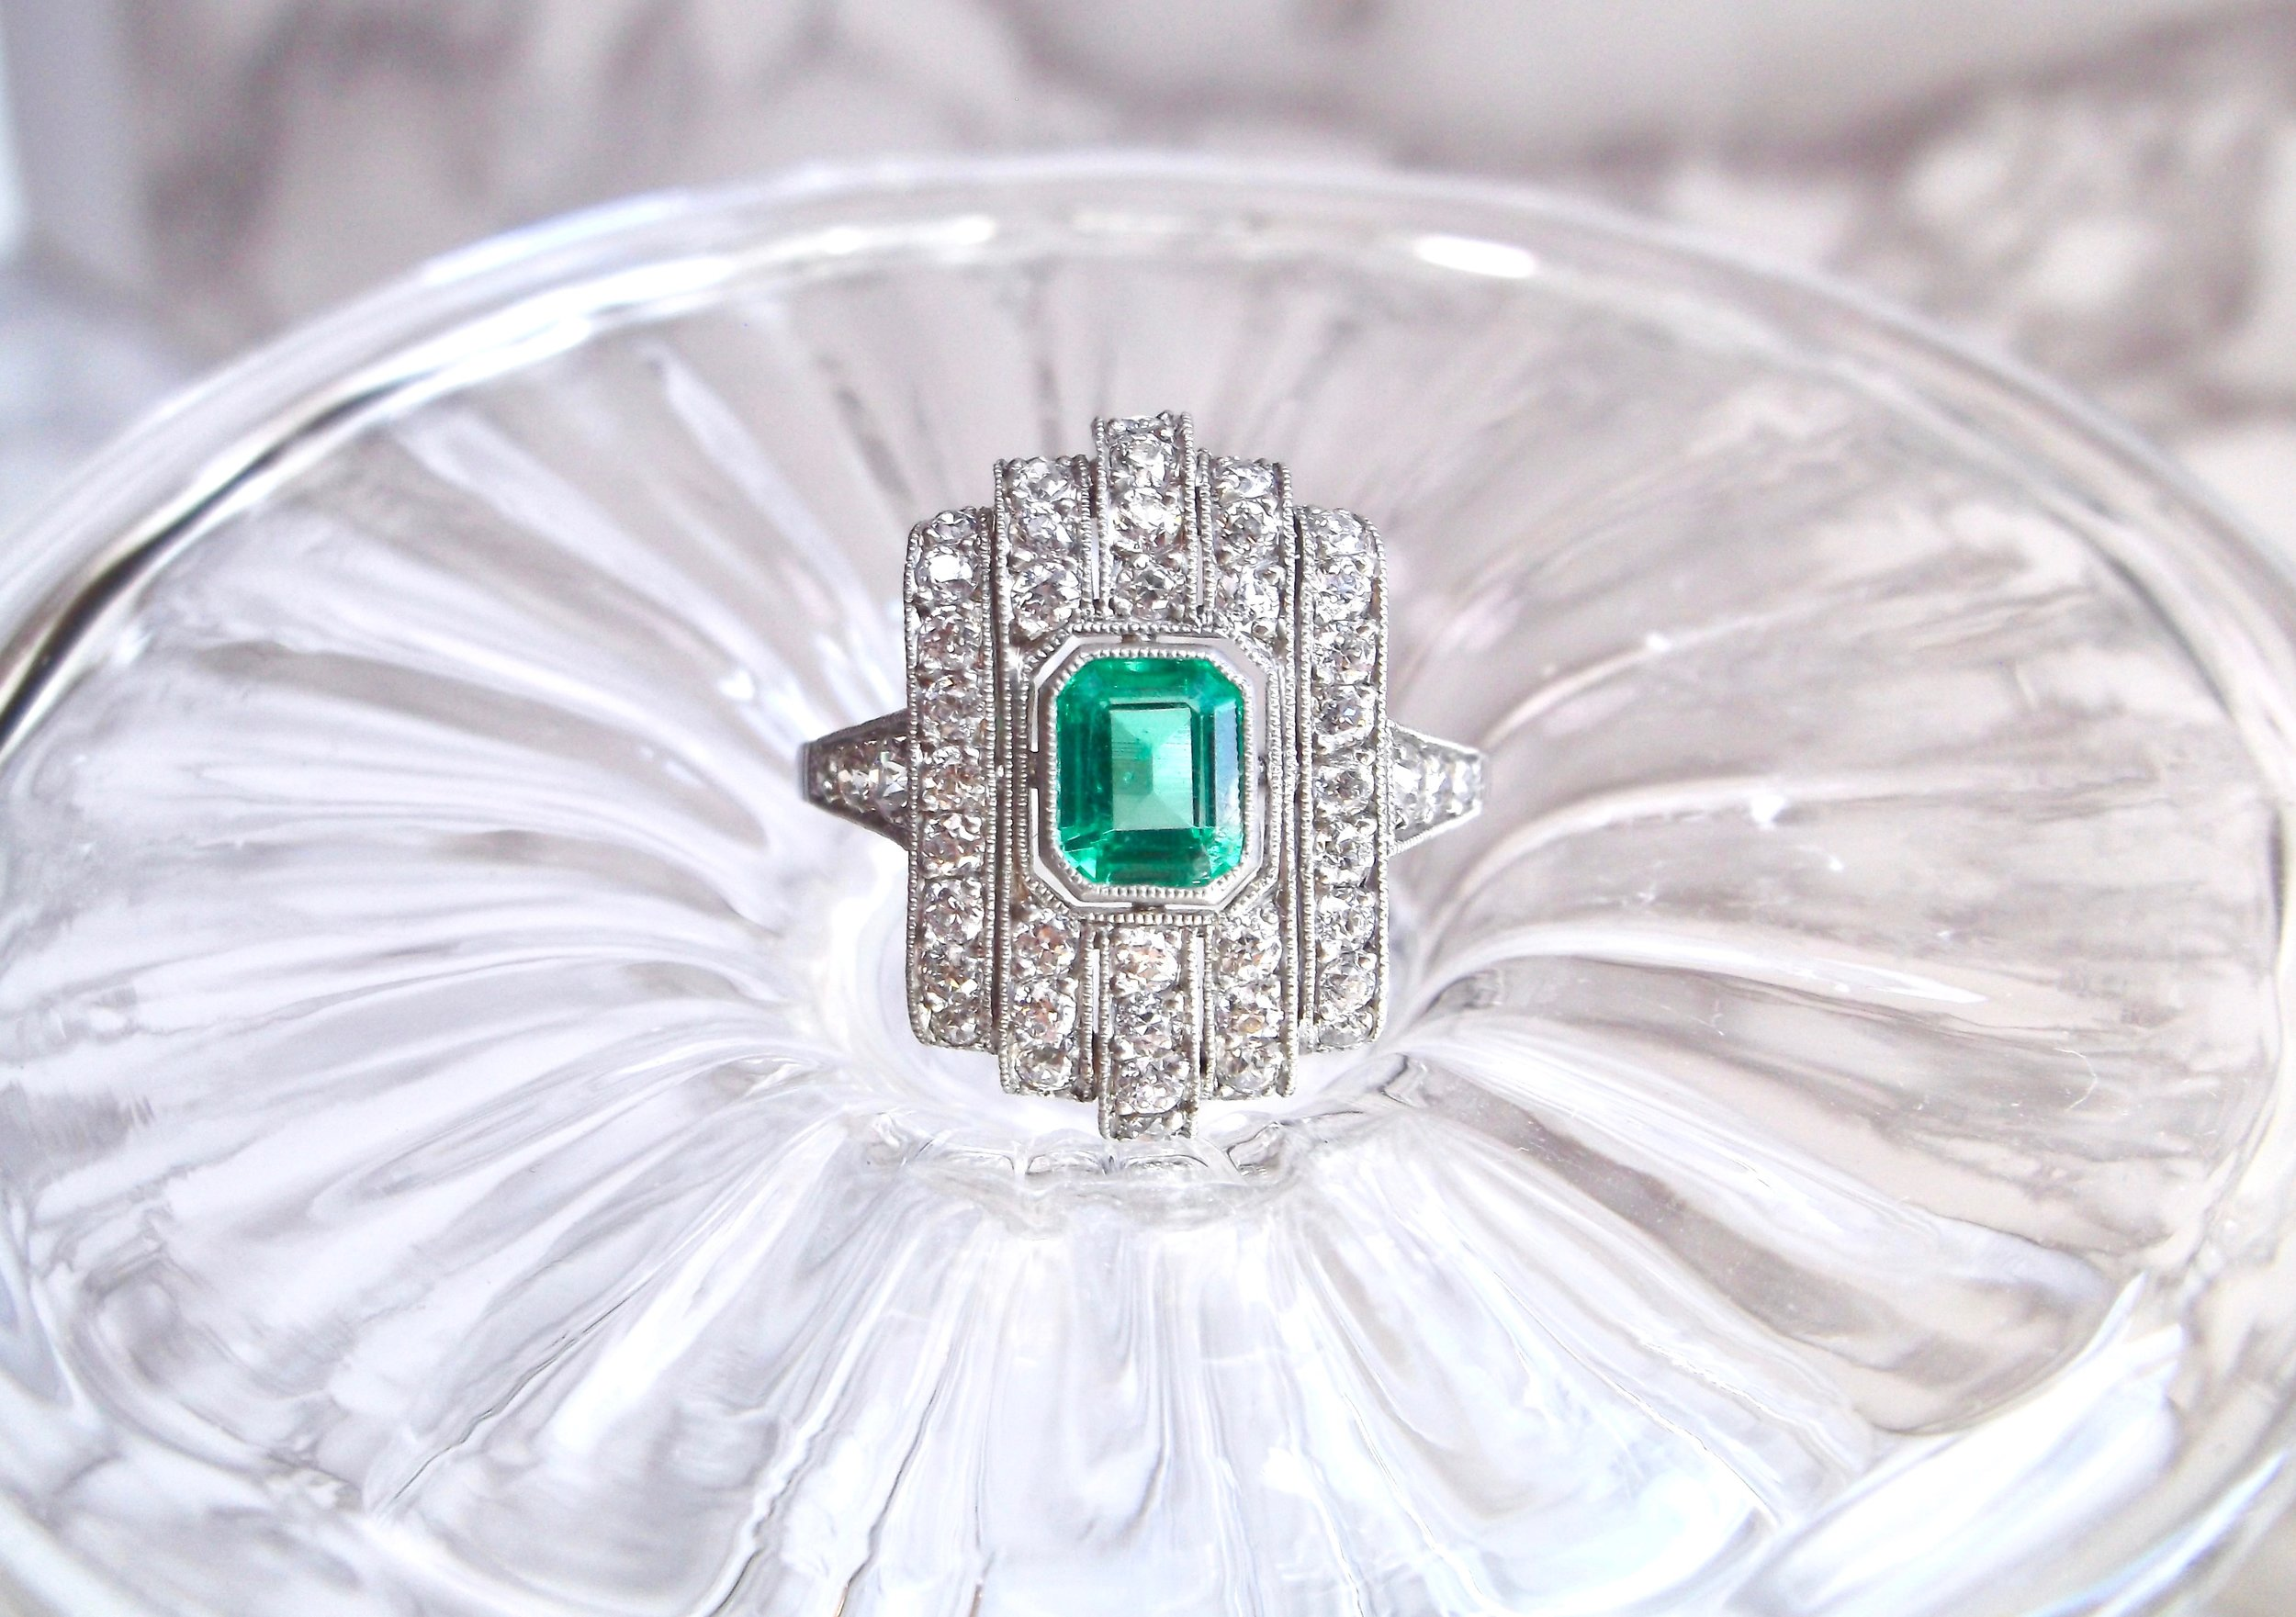 The Art Deco beauties keep rolling in! This gorgeous emerald, diamond and platinum ring features a center 0.65 carat step cut emerald, surrounded by 1.00 carats in Old Mine cut diamonds with gorgeous filigree details underneath!  See all the angles  HERE